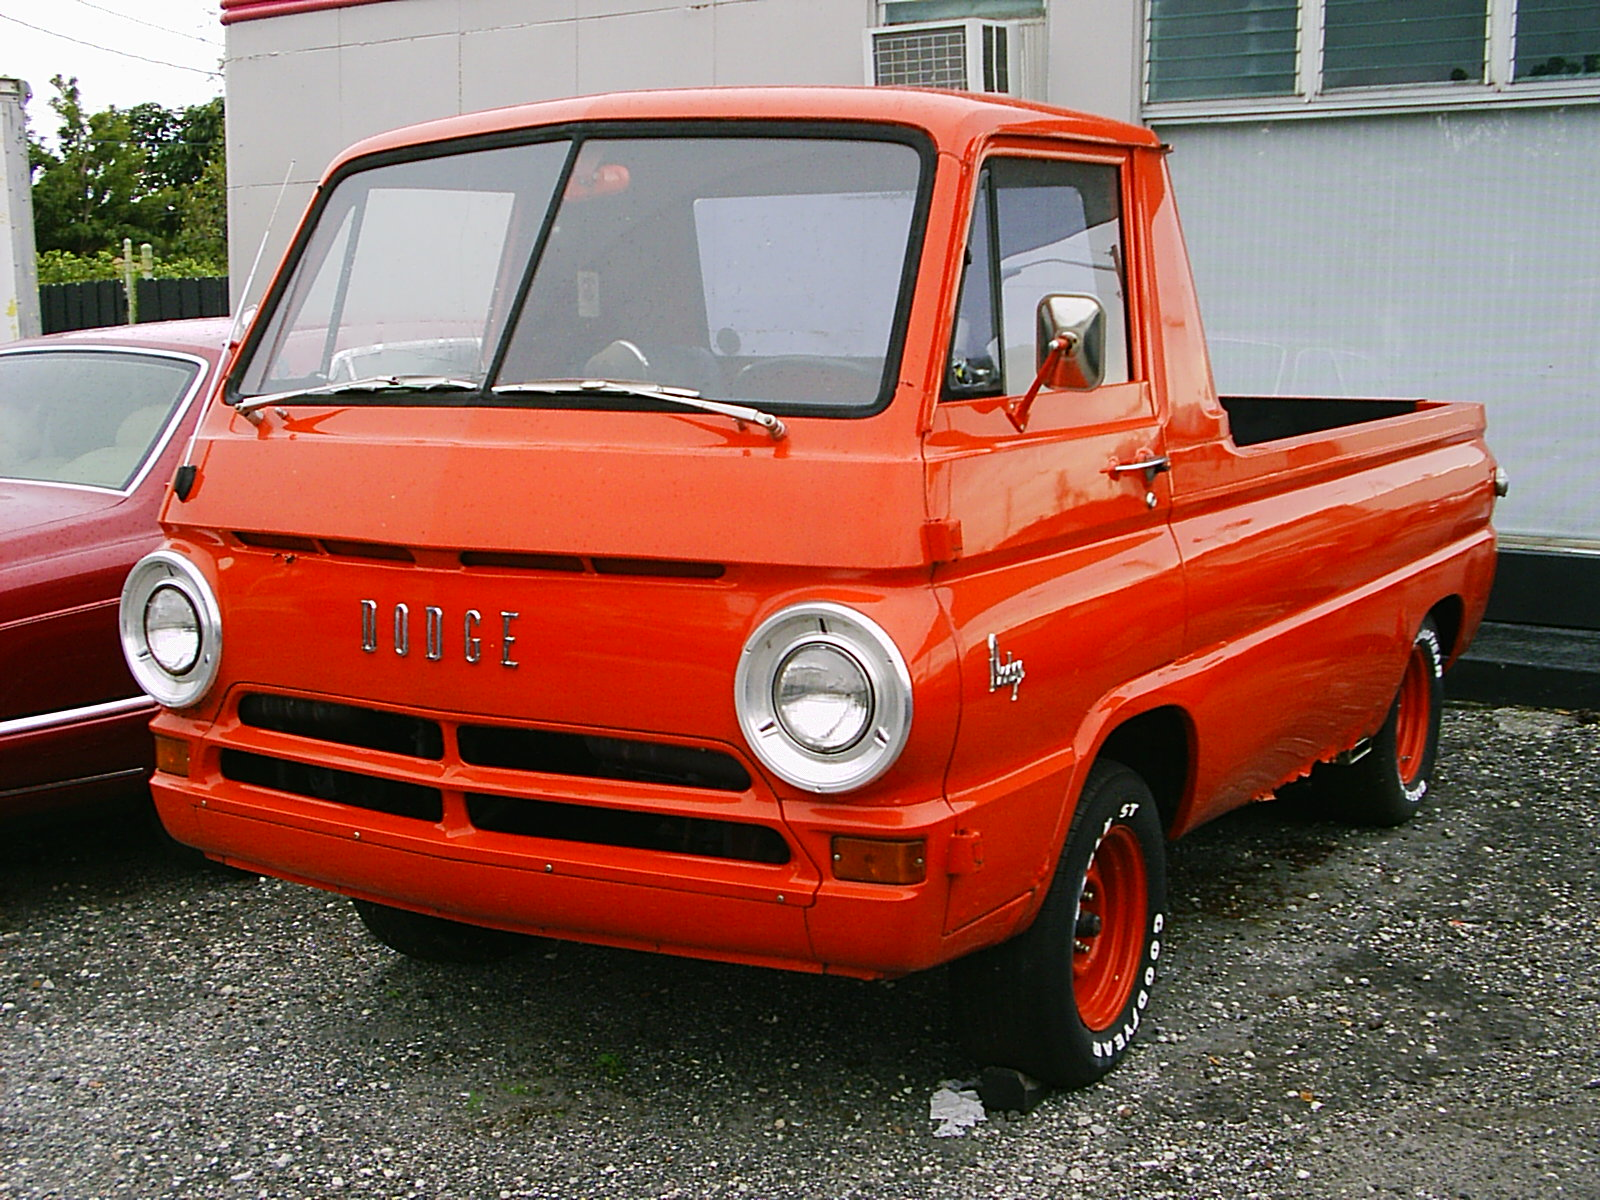 ファイル:Dodge A100 COE pickup red.jpg